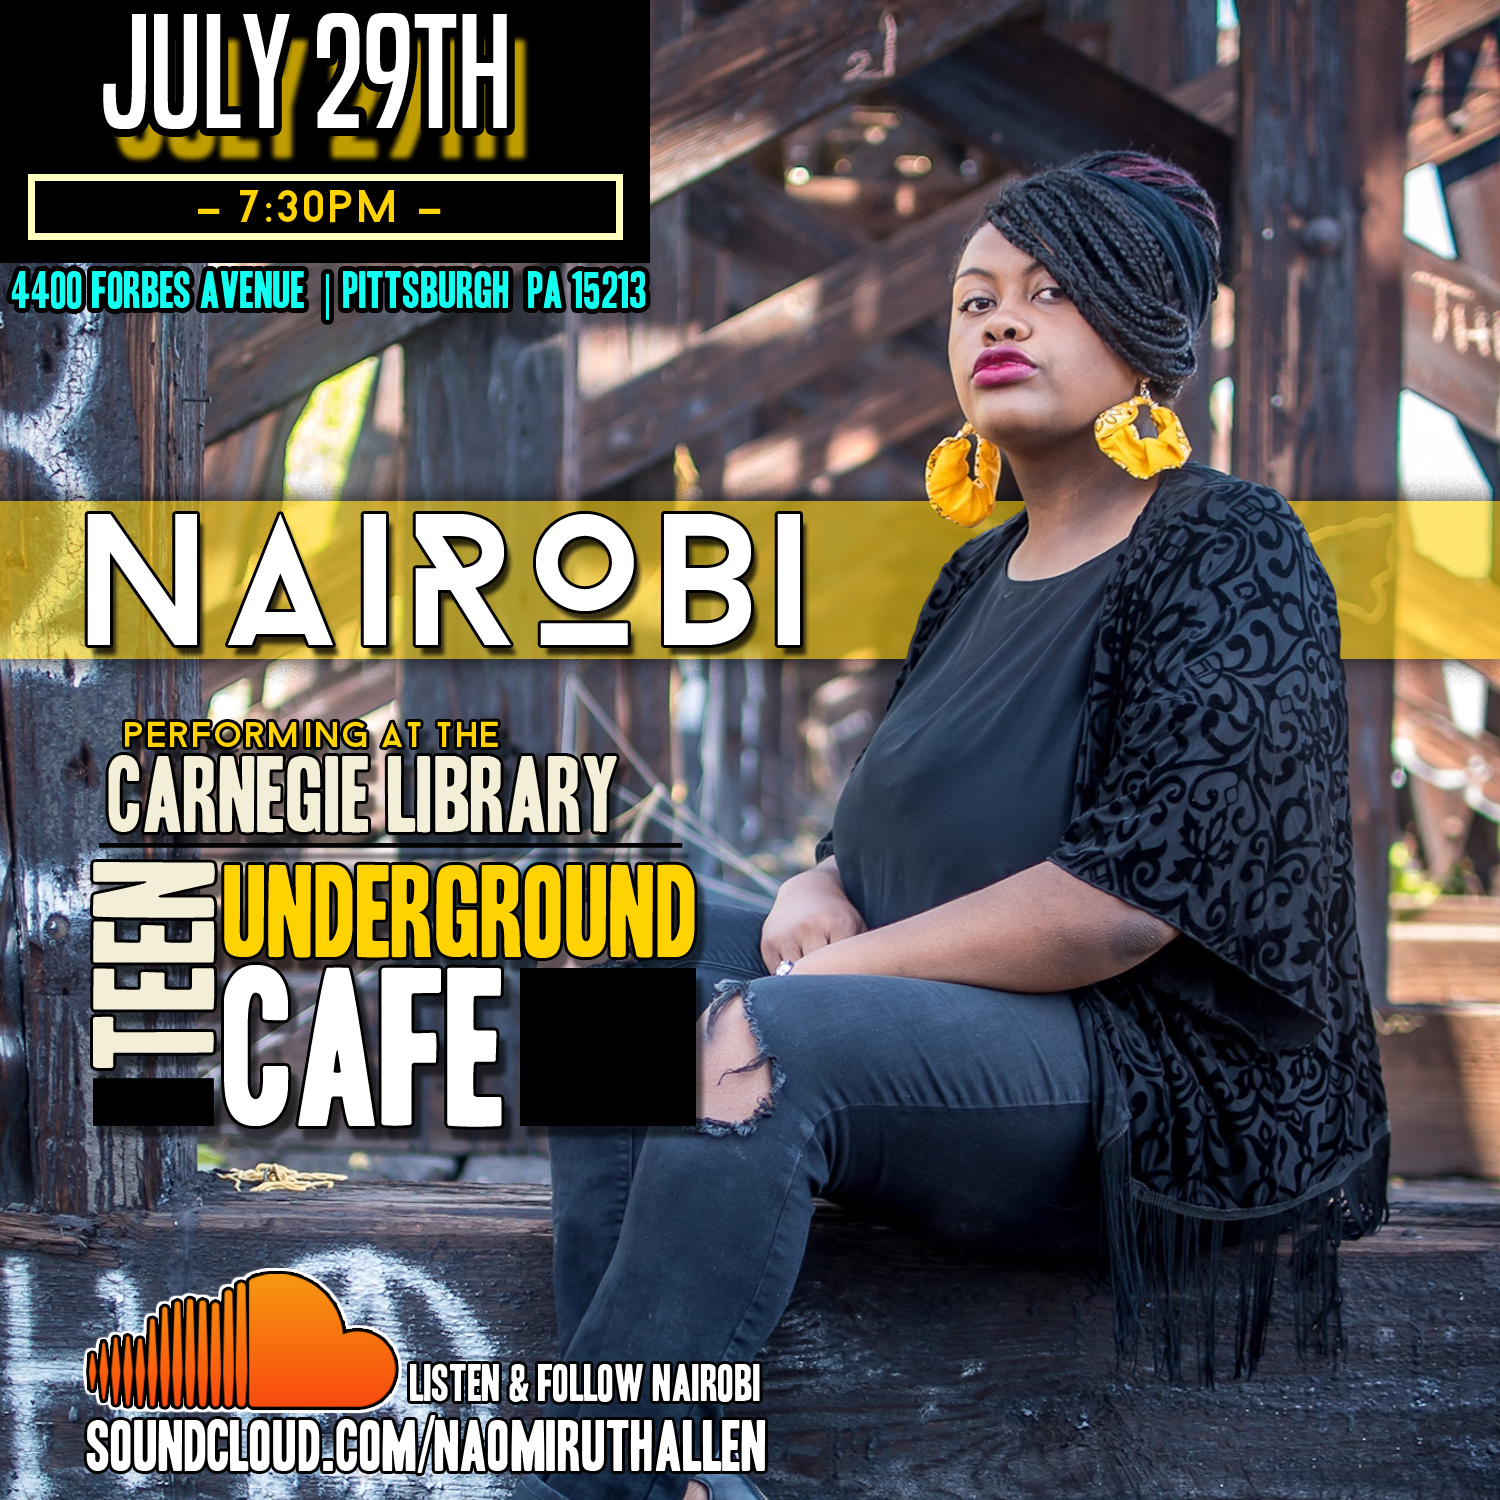 Nairobi @ Teen Underground Cafe flyer